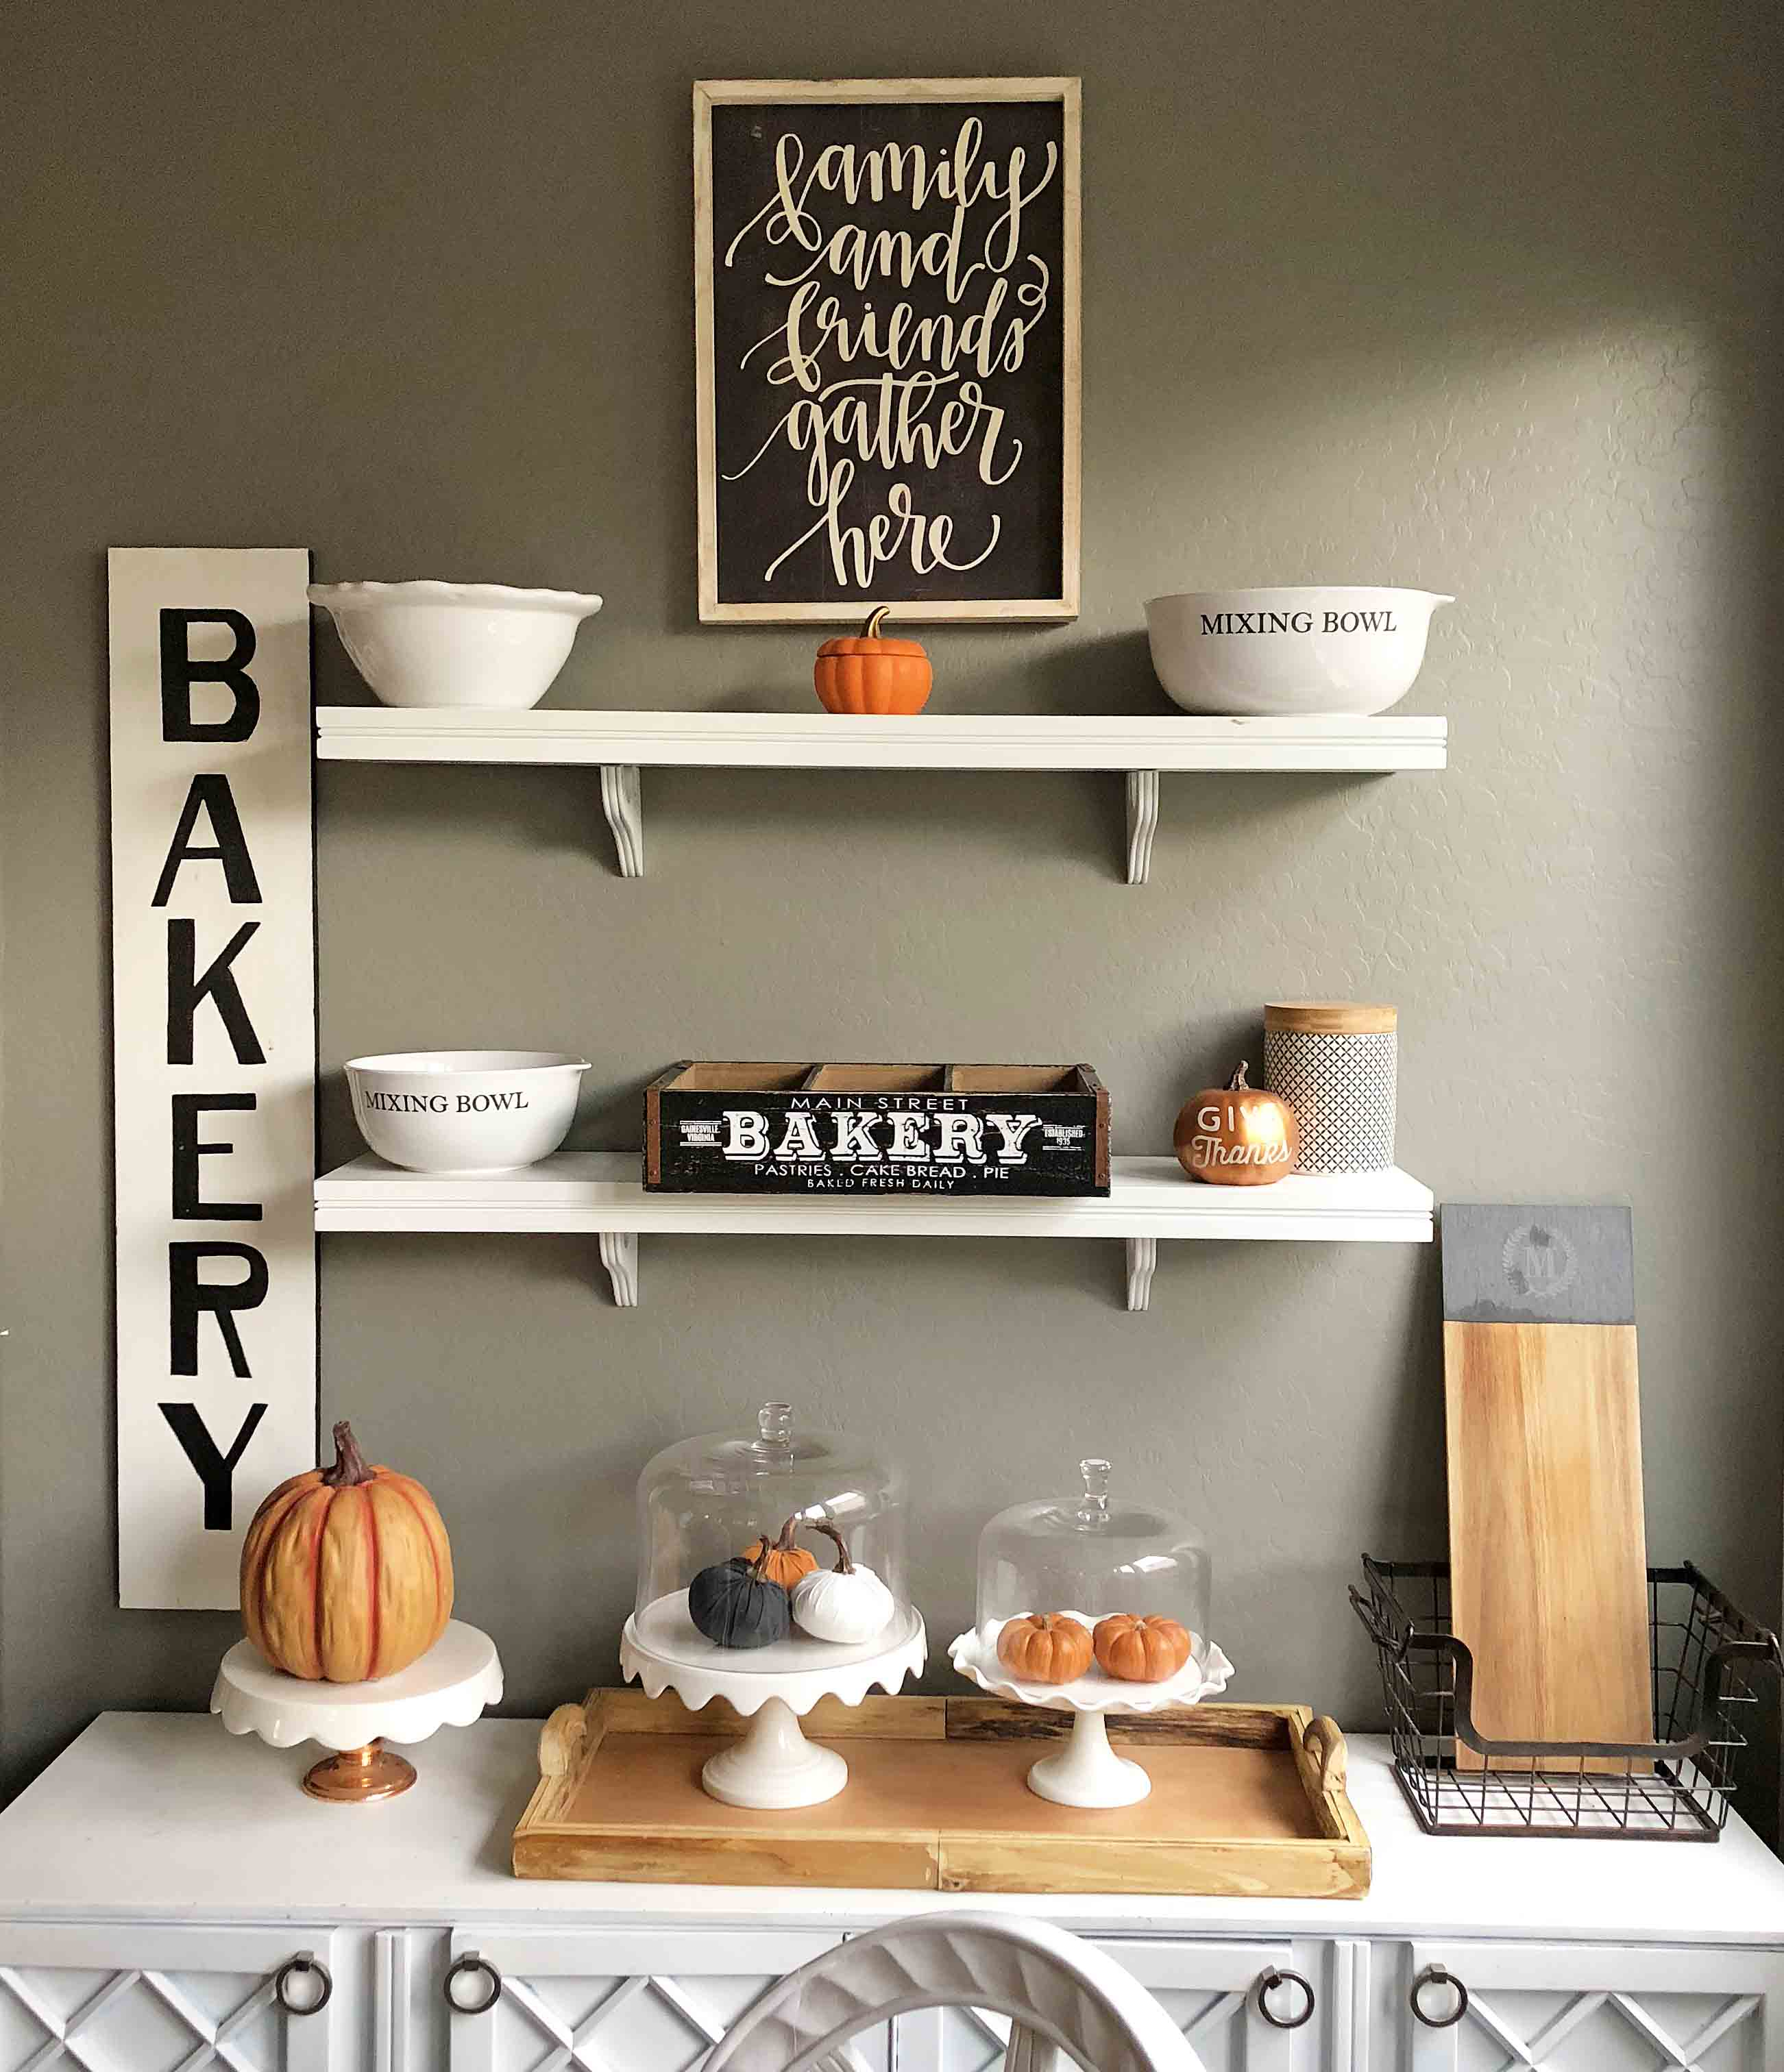 Fall Decor Ideas. How to decorate a kitchen for Fall. Halloween Fall Kitchen Shelves. Fall Decoration Ideas. www.modernhoney.com #falldecor #falldecorationideas #halloween #fall #fallkitchen #kitchenfalldecor